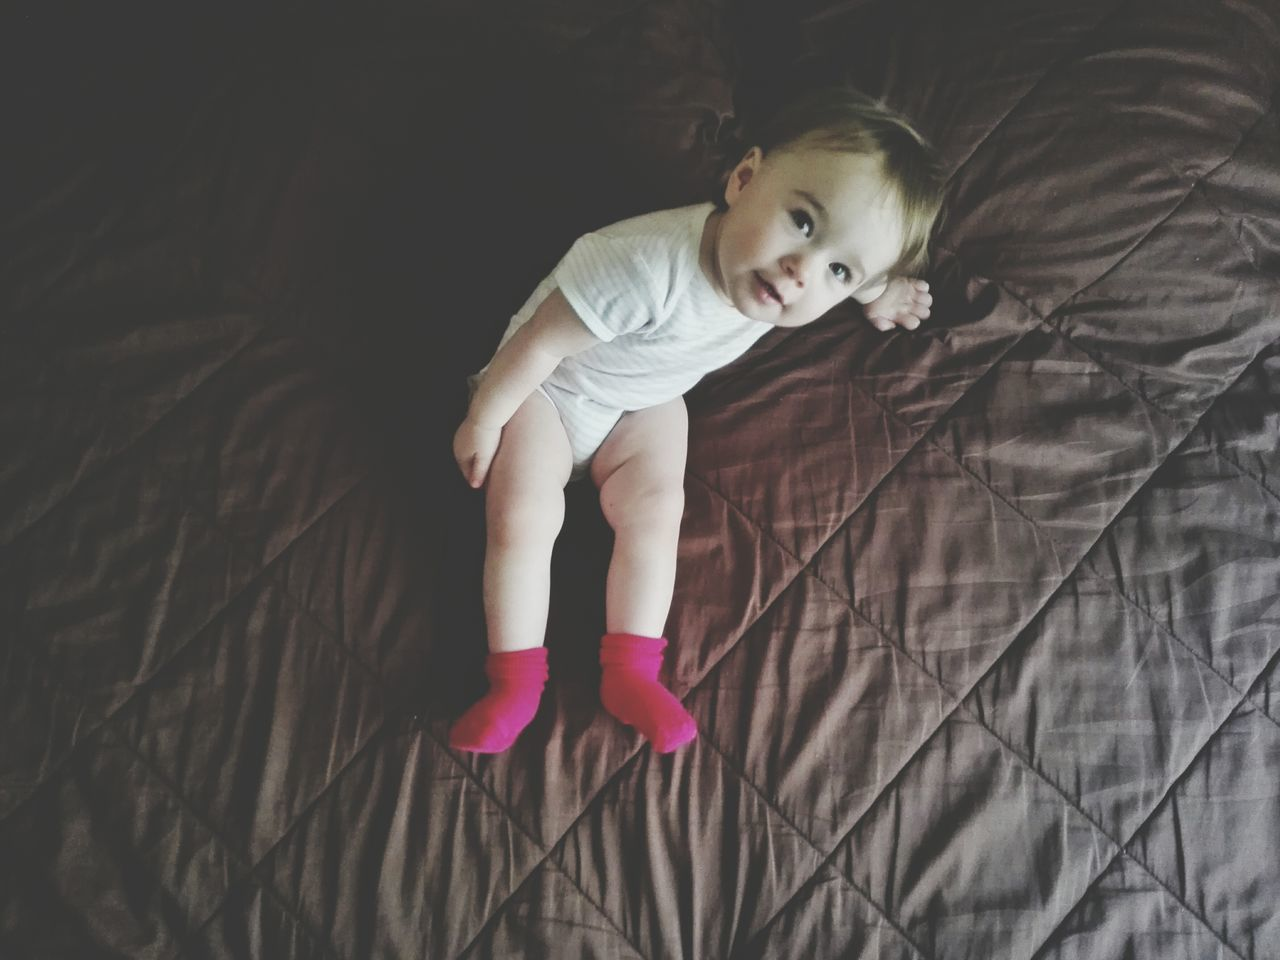 Child Childhood One Girl Only Full Length Children Only One Person High Angle View Blond Hair Indoors  Day Portugal Lisbon Honor6 Baby Girl 14months Looking At Camera Portrait Portrait Of A Girl People Millennial Pink The Portraitist - 2017 EyeEm Awards